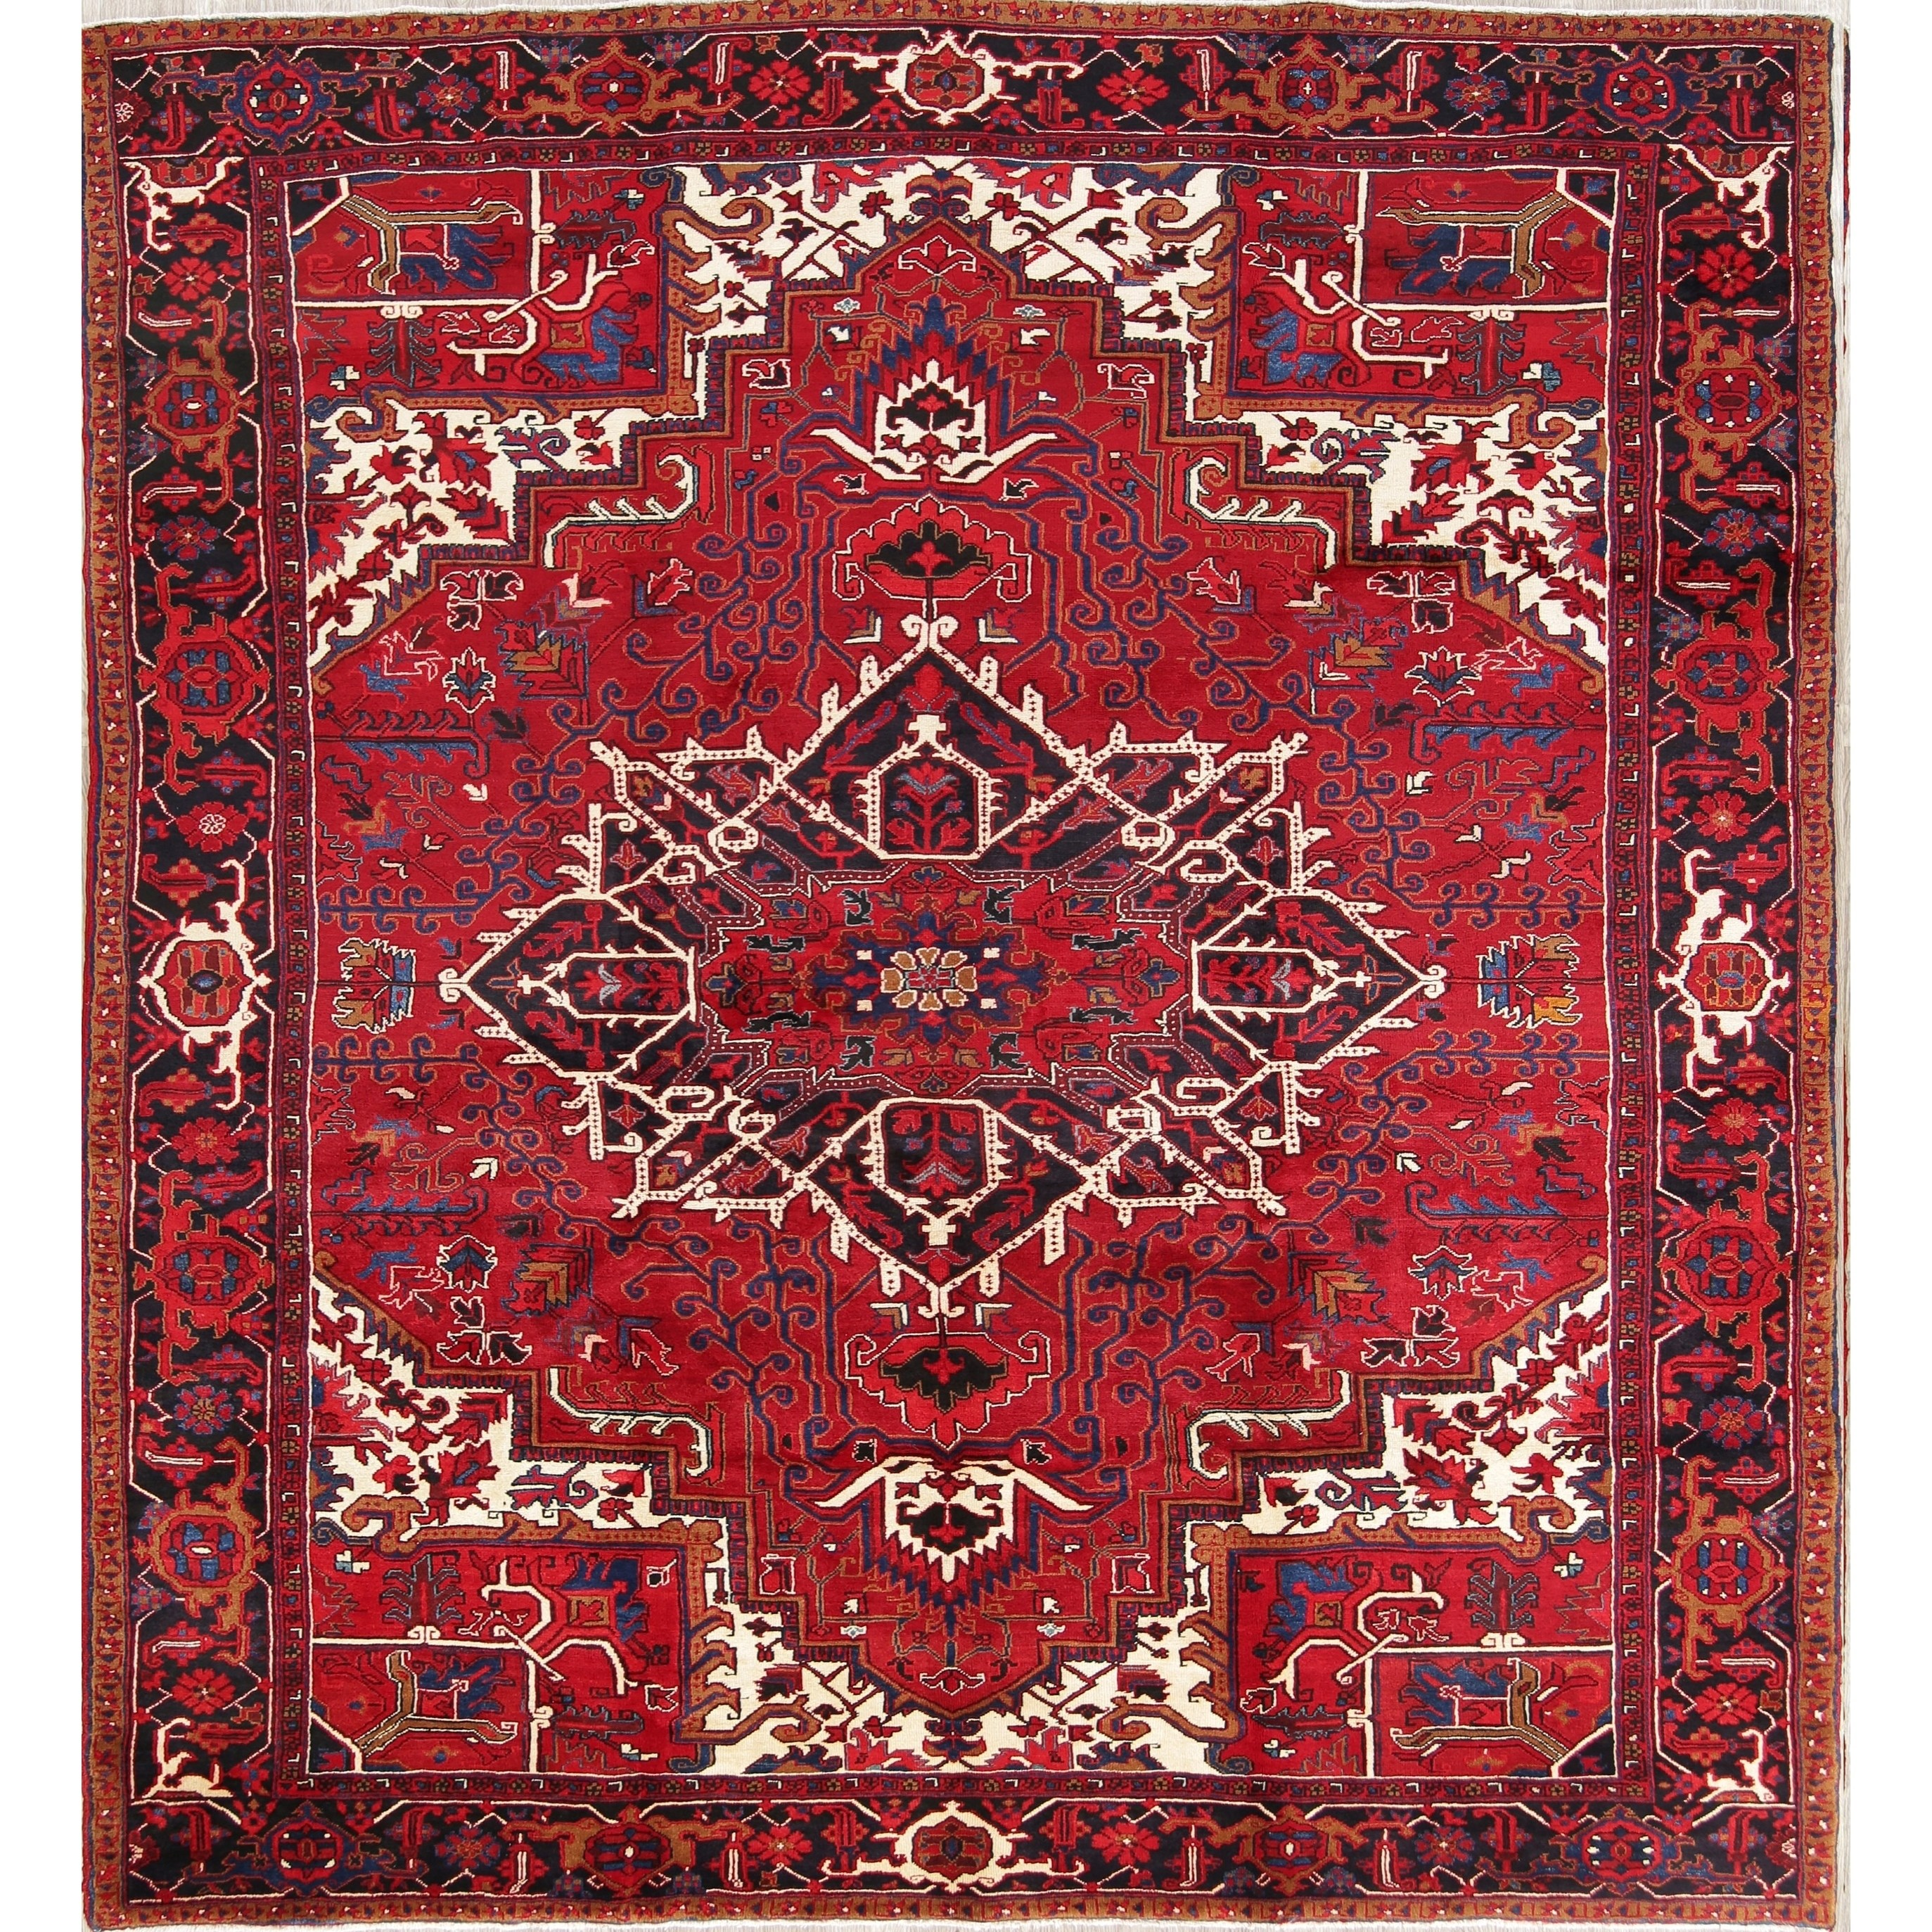 Refurbished Vintage Hand Made Wool Oriental Heriz Persian Carpet Area Rug 12 7 X 9 7 12 7 X 9 7 Red In 2020 Carpets Area Rugs Persian Carpet Patterned Carpet